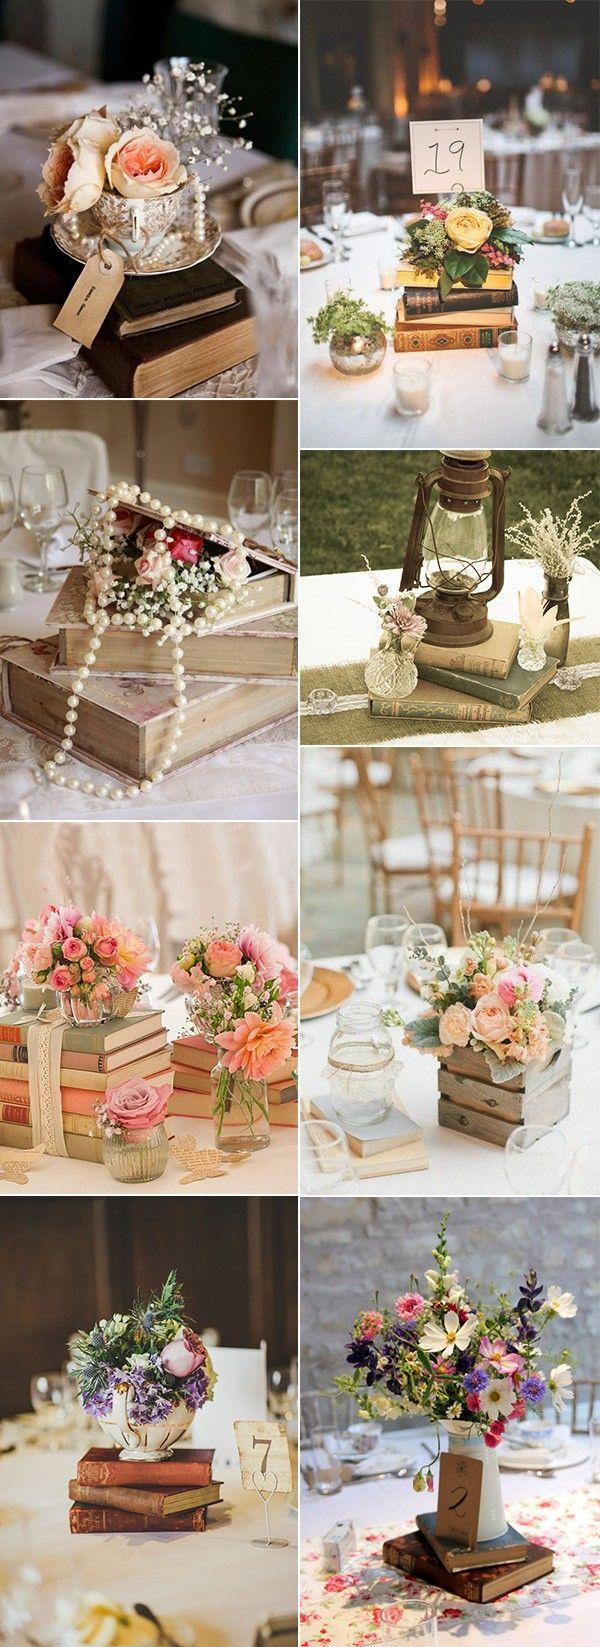 Wedding - 50 Fabulous Vintage Wedding Centerpiece Decoration Ideas